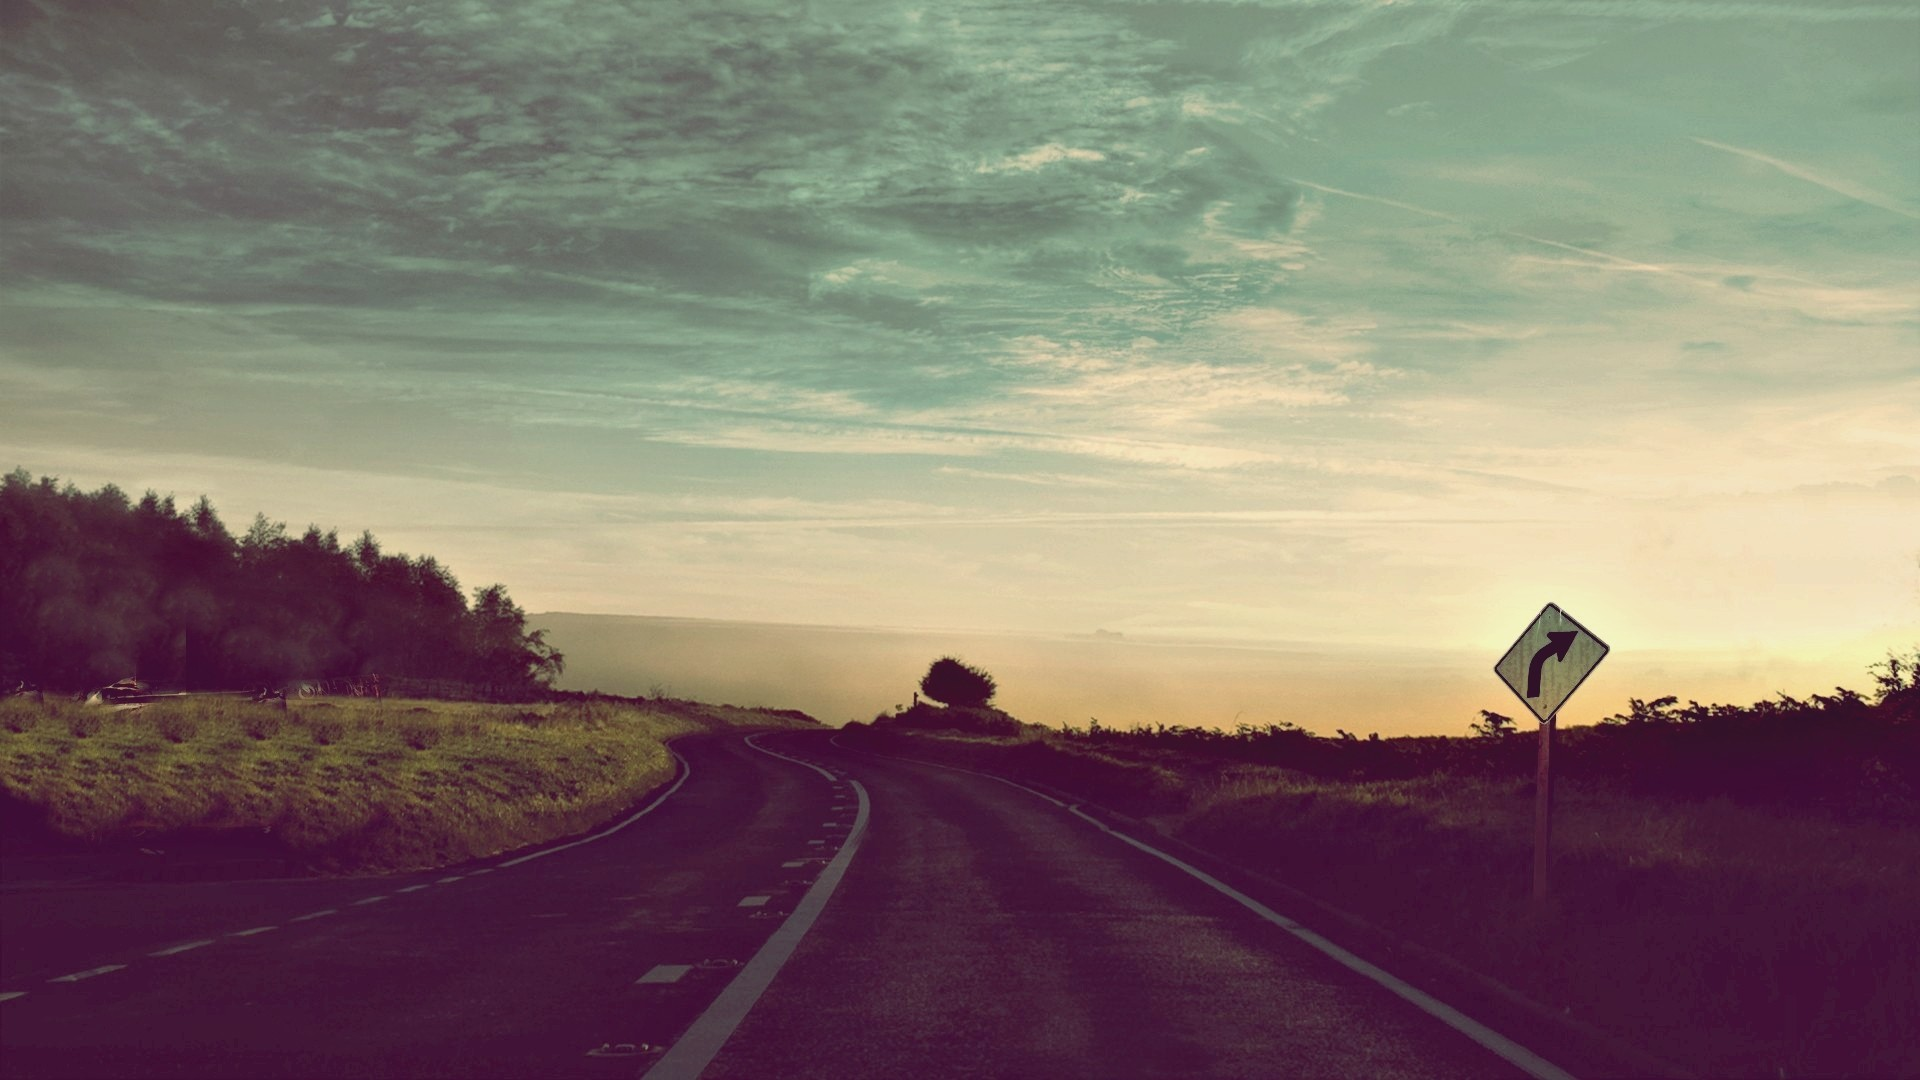 20738 Tumblr Backgrounds